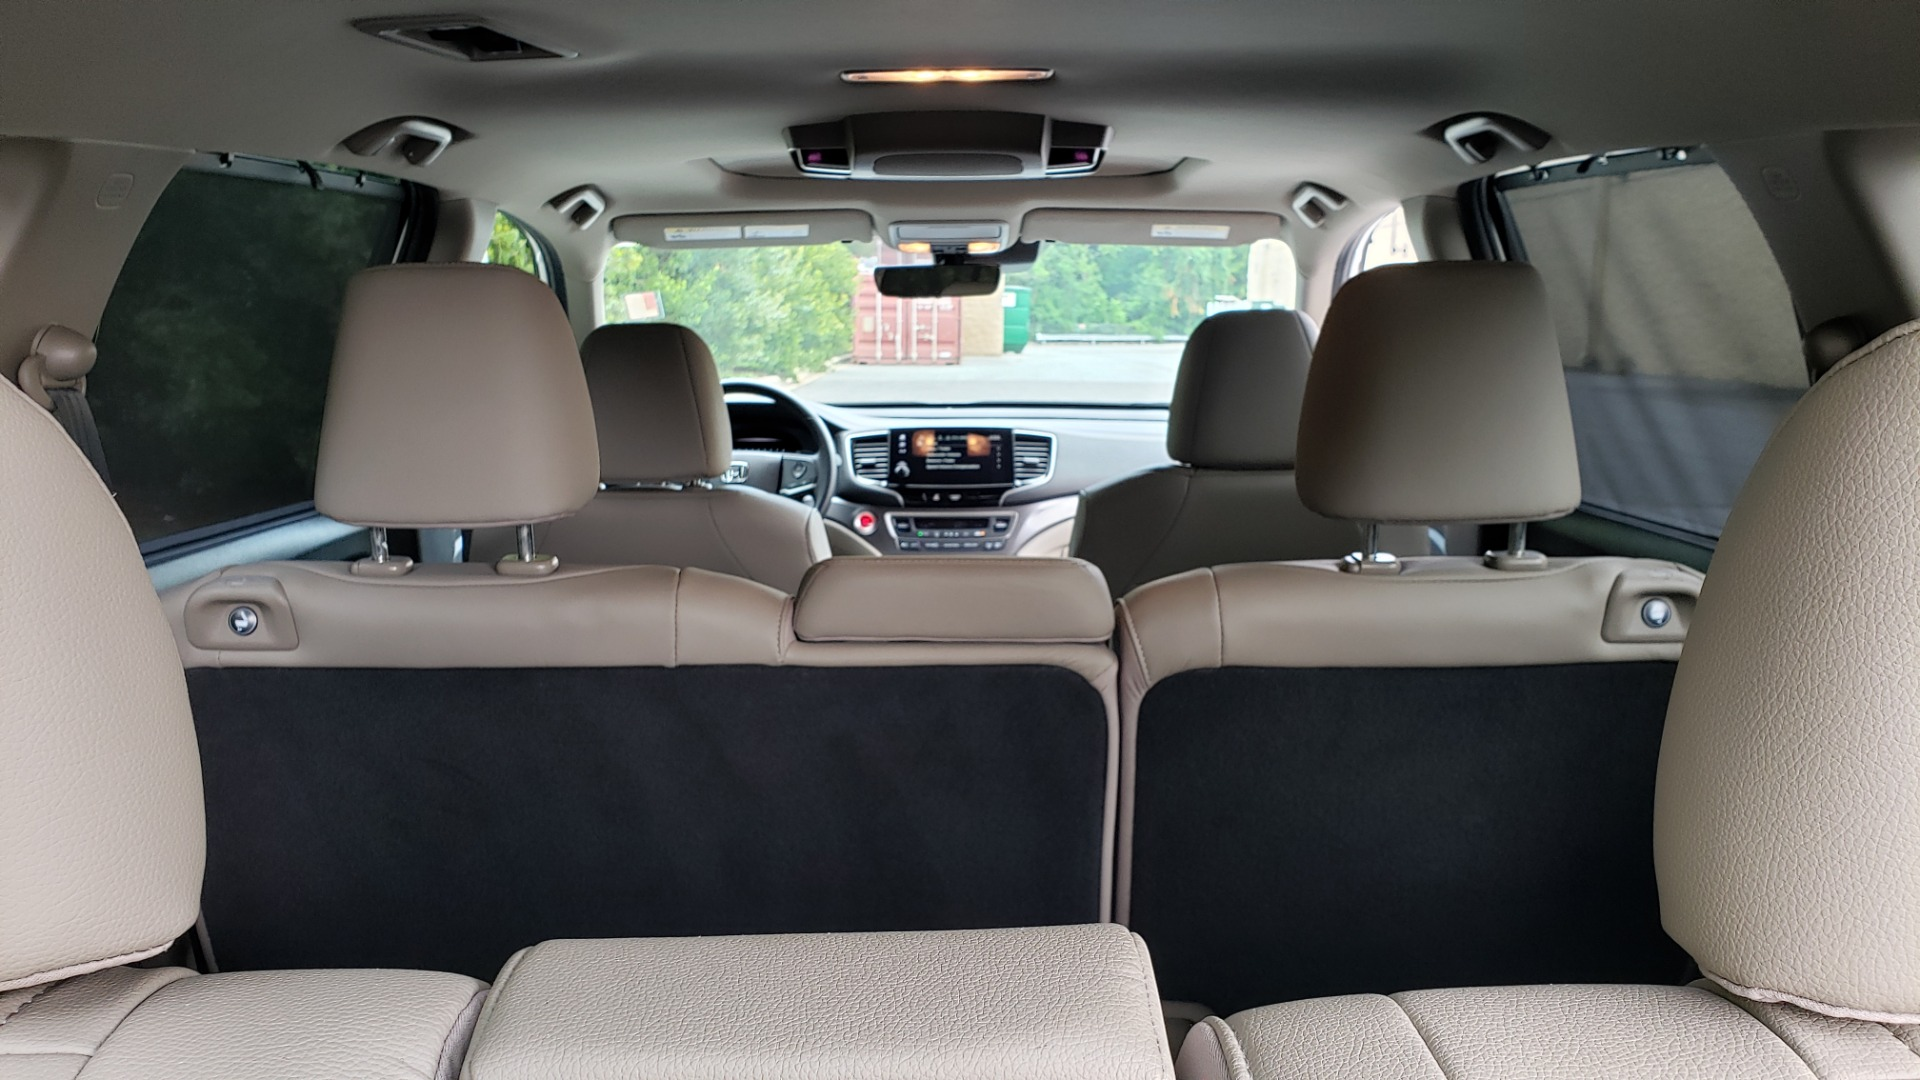 Used 2019 Honda PILOT EX-L / V6 / NAV / SUNROOF / DVD / 3-ROW / REARVIEW for sale Sold at Formula Imports in Charlotte NC 28227 14